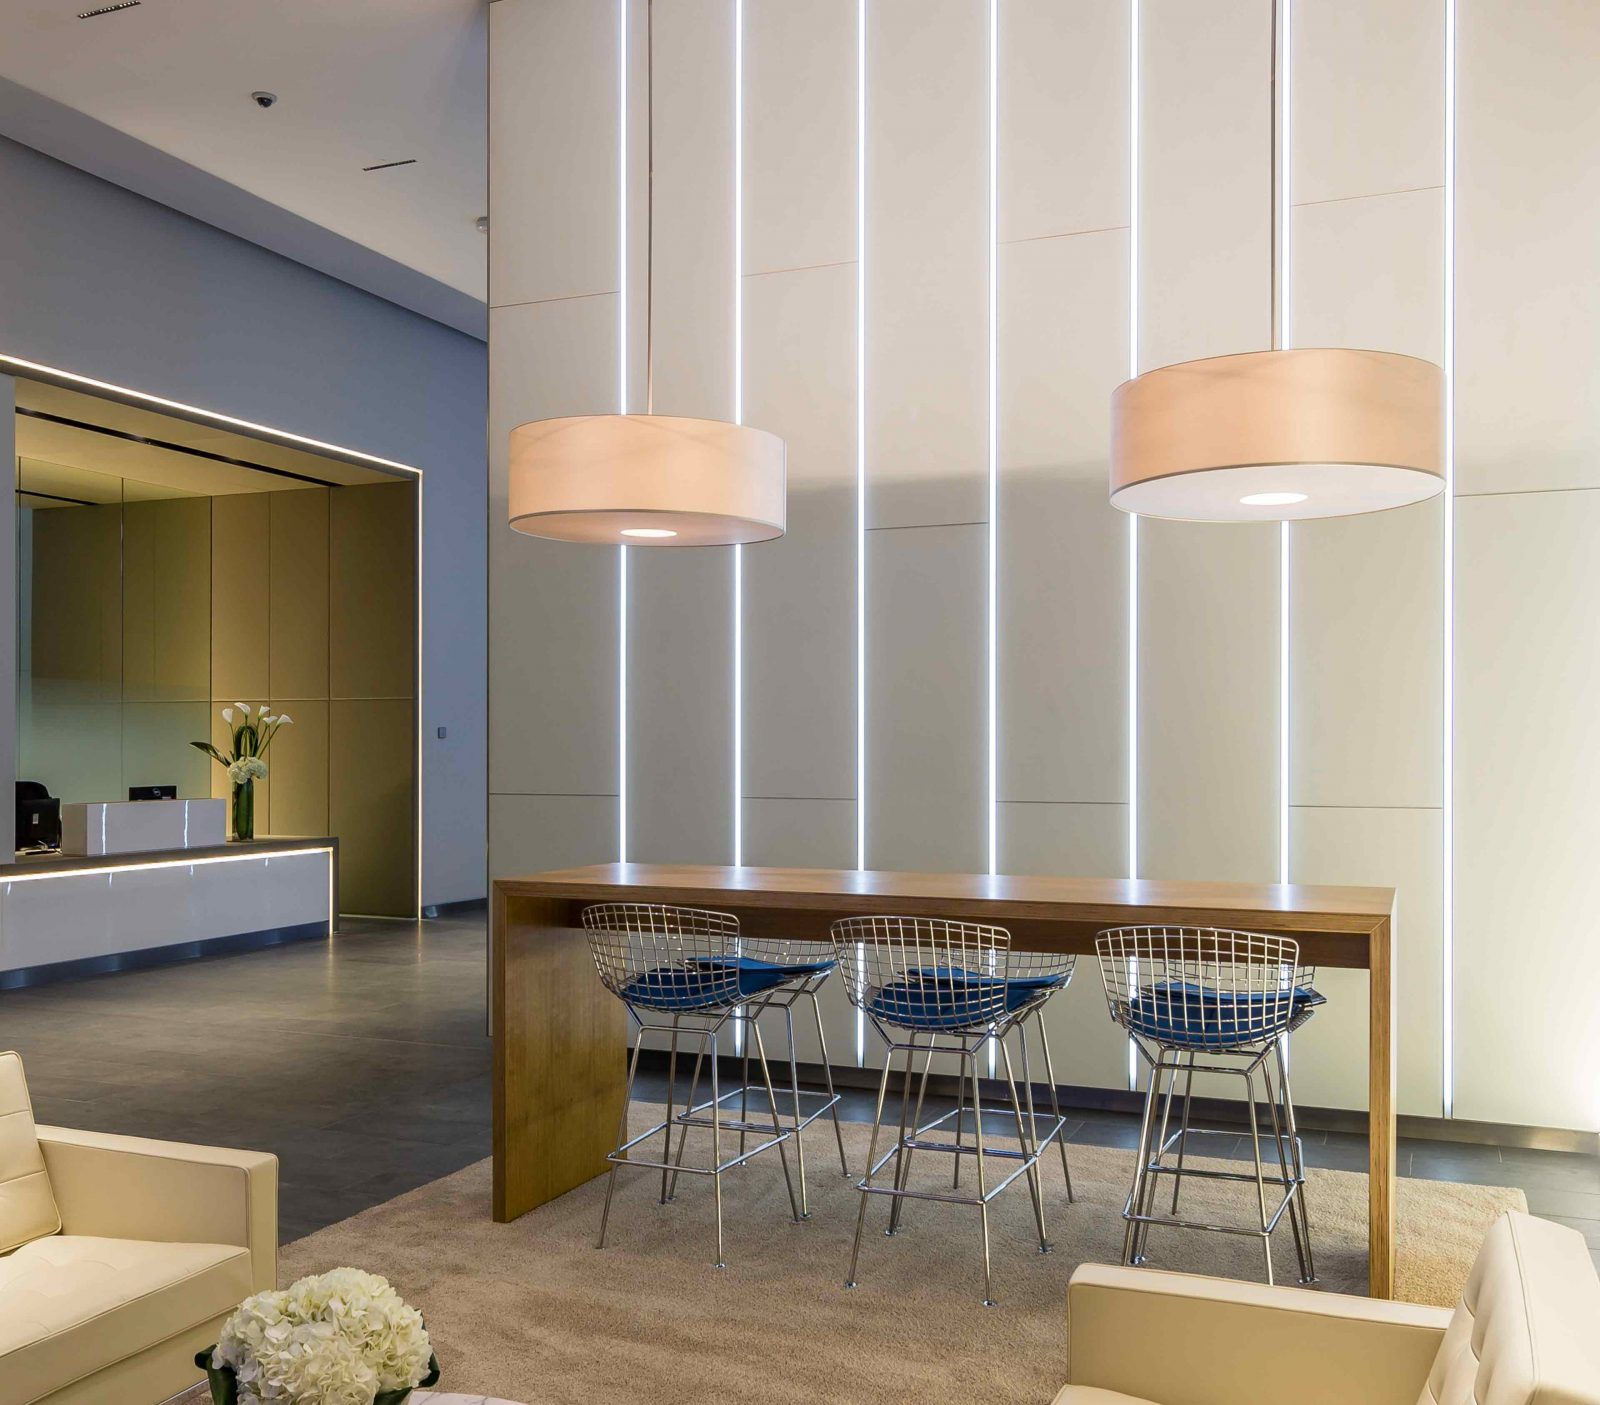 Office Reception Area Vertical Stripe Wall Lighting Feature Pendants Studio N